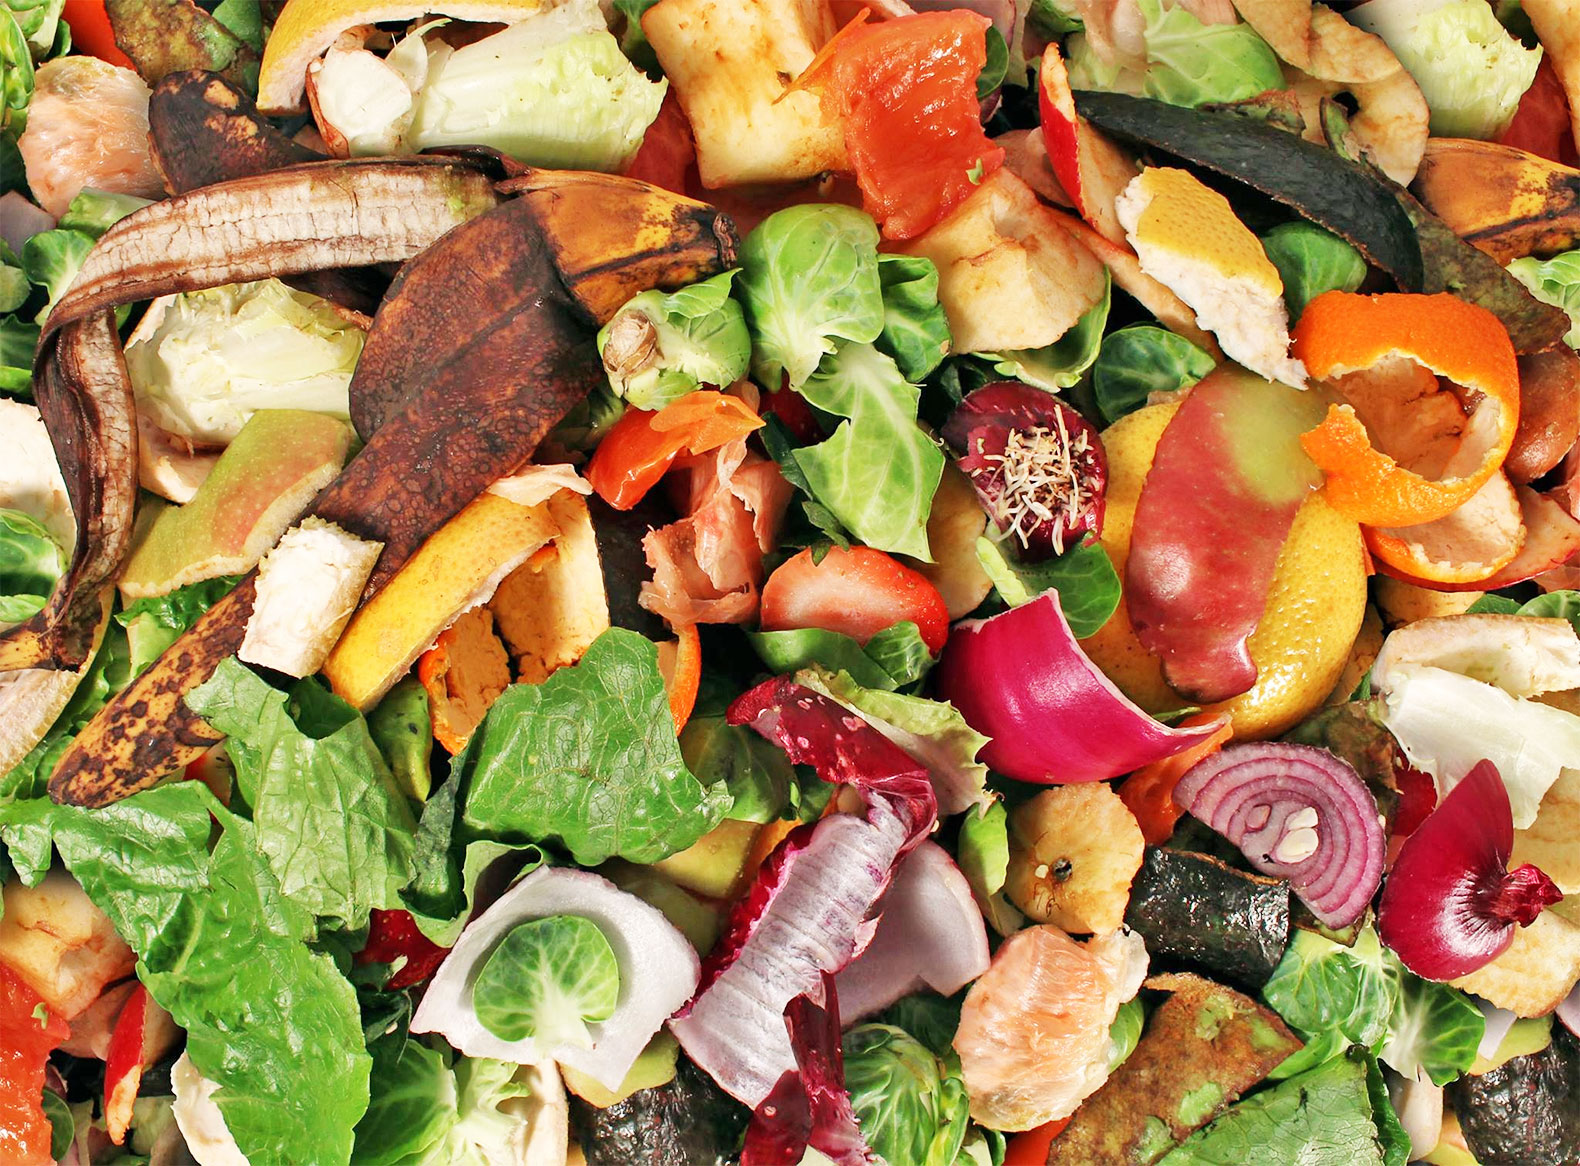 Nyc To Triple Food Waste Compost Program In To Reach